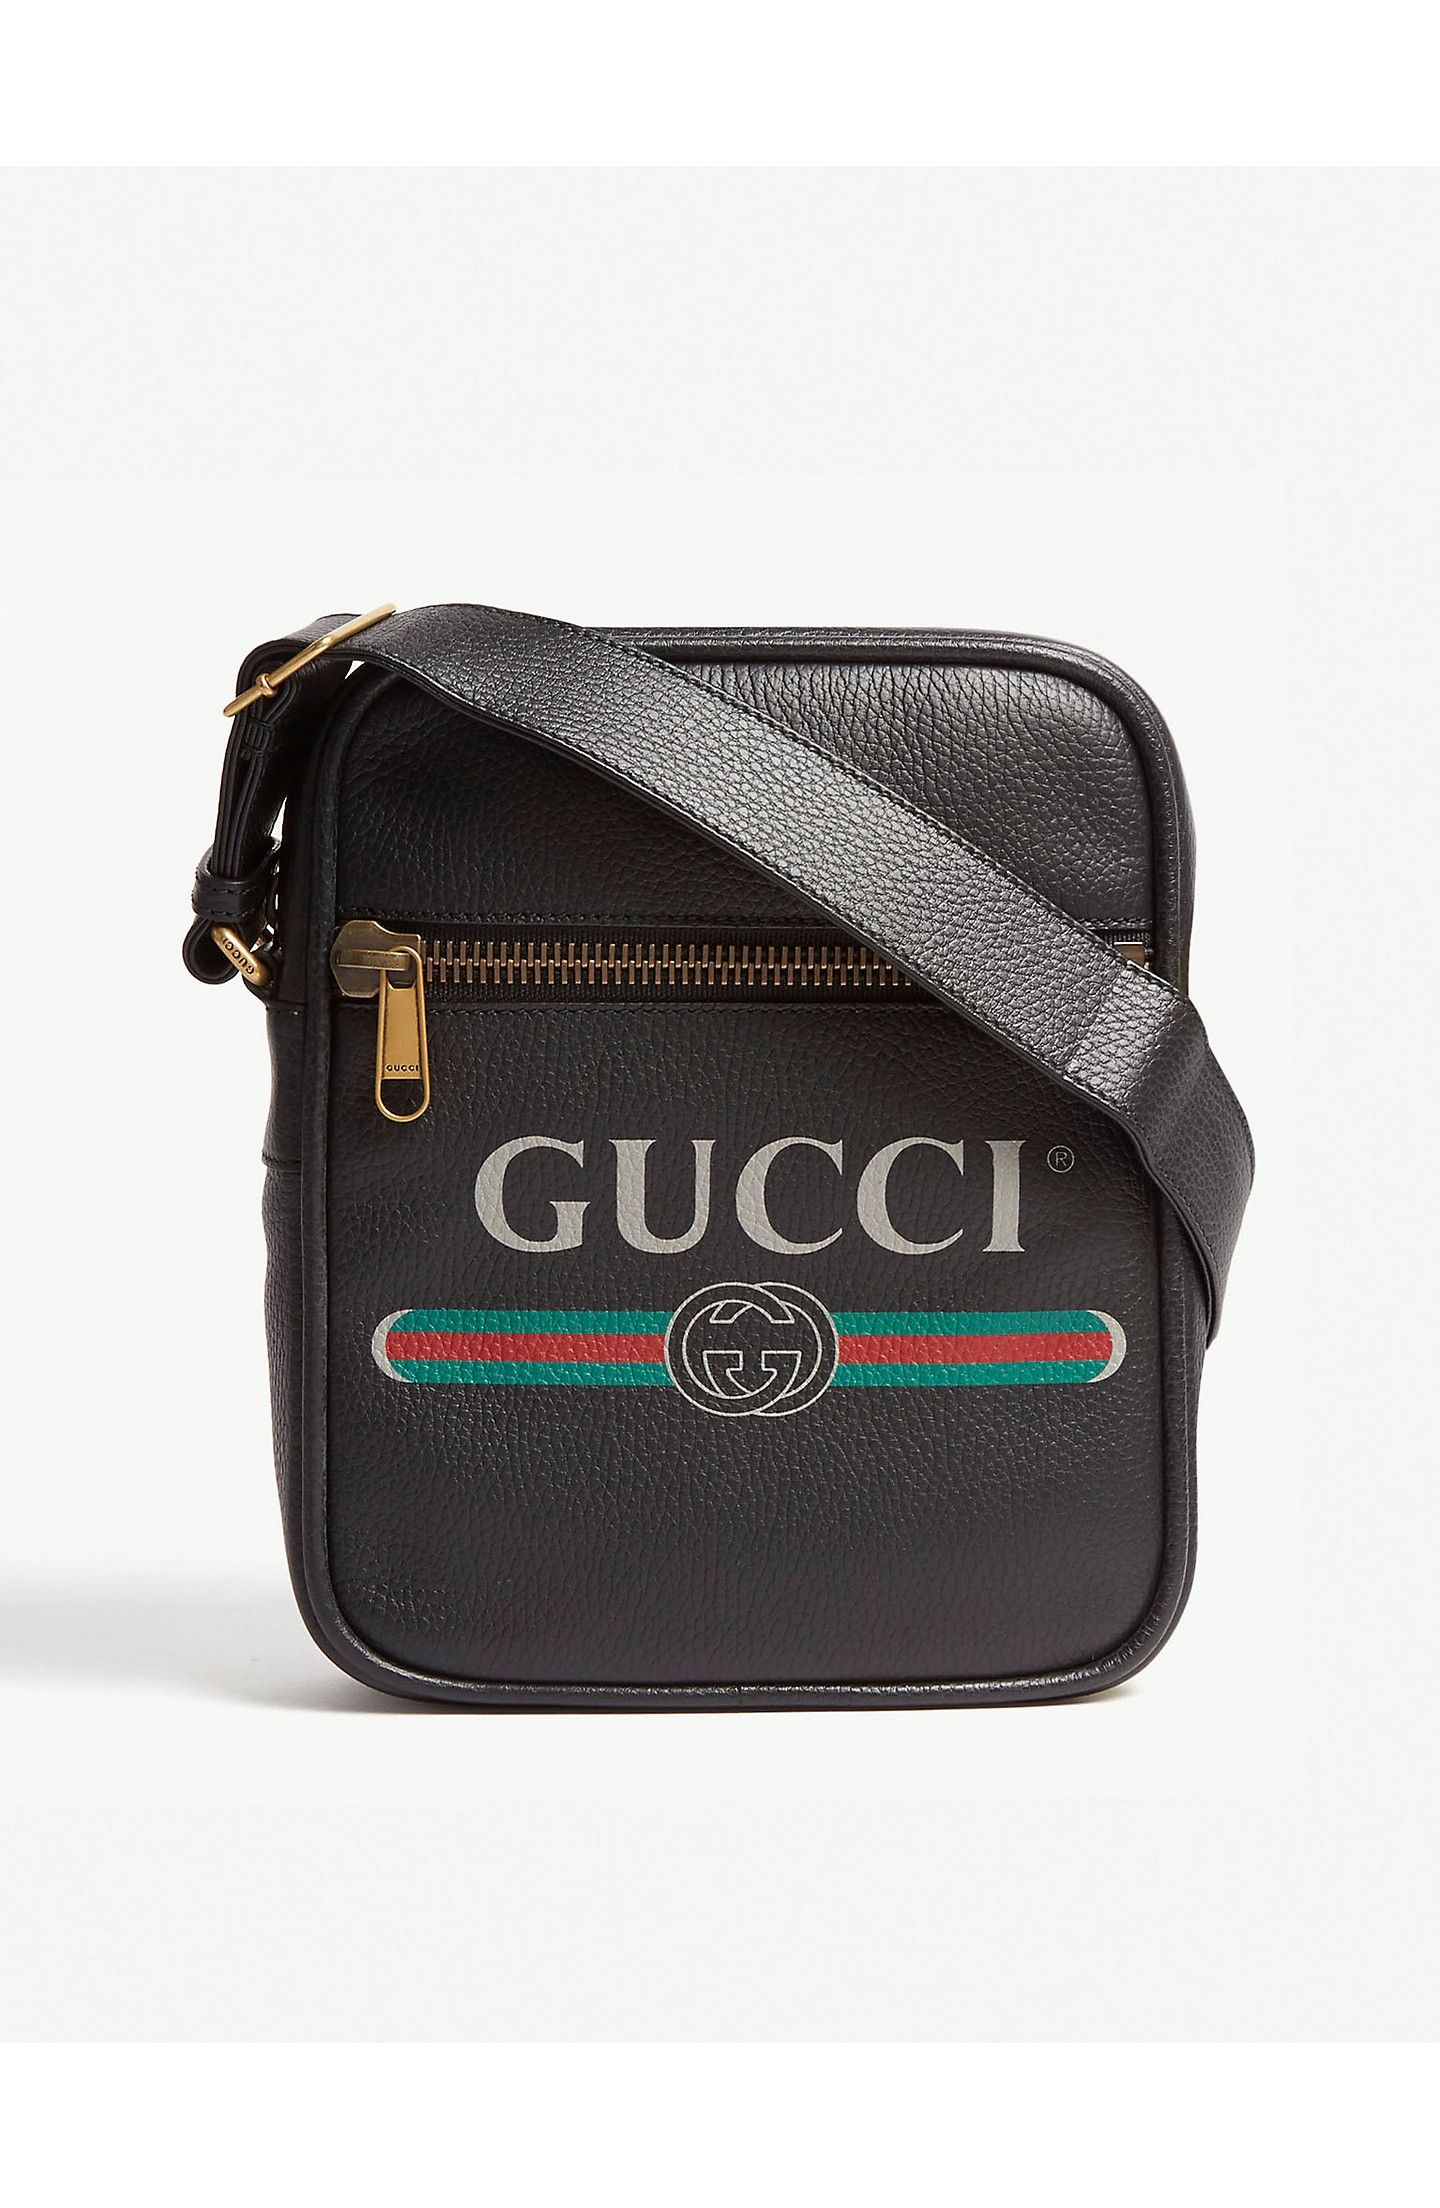 GUCCI - Leather messenger bag   Selfridges.com   Bolsa Masculina em ... fb9a7b0db8